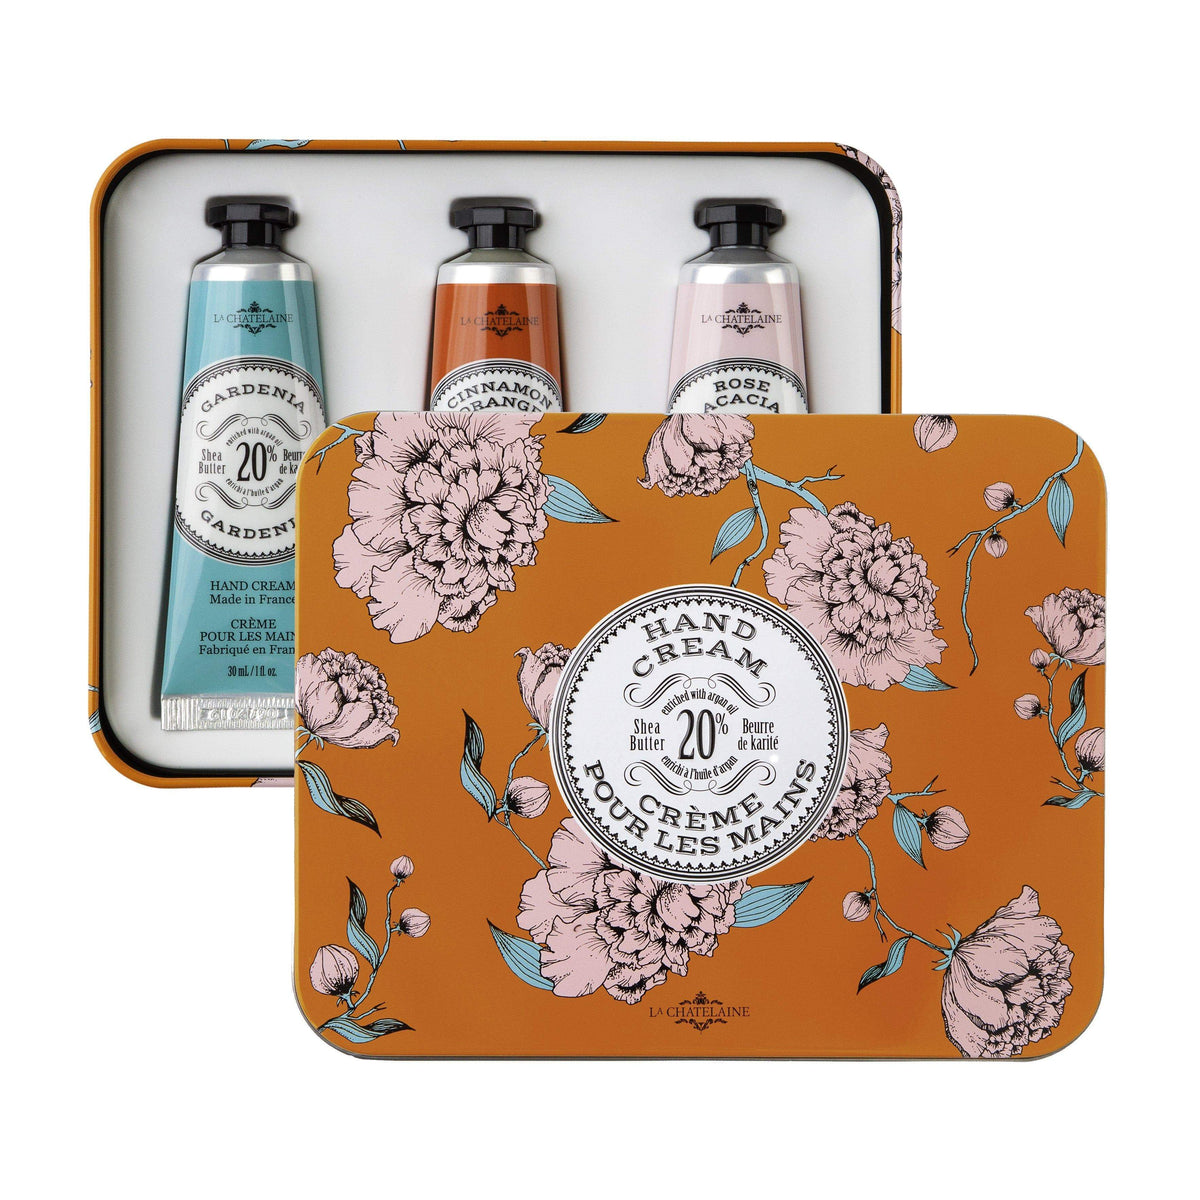 La Chatelaine Hand Cream Trio Gift Box - Orange